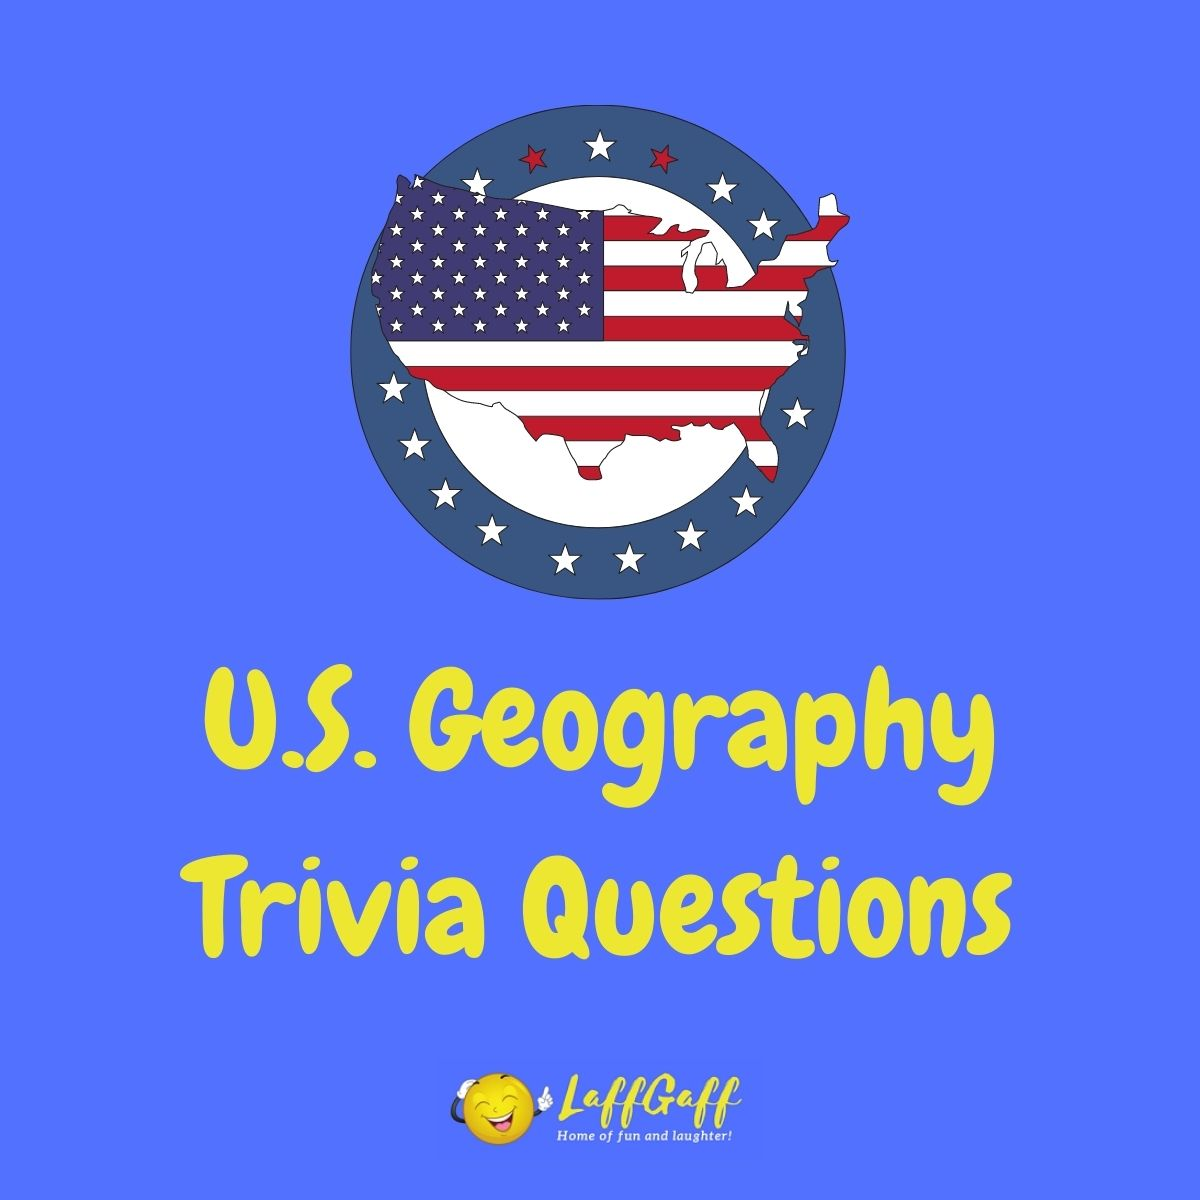 Featured image for a page of U.S. geography trivia questions and answers.